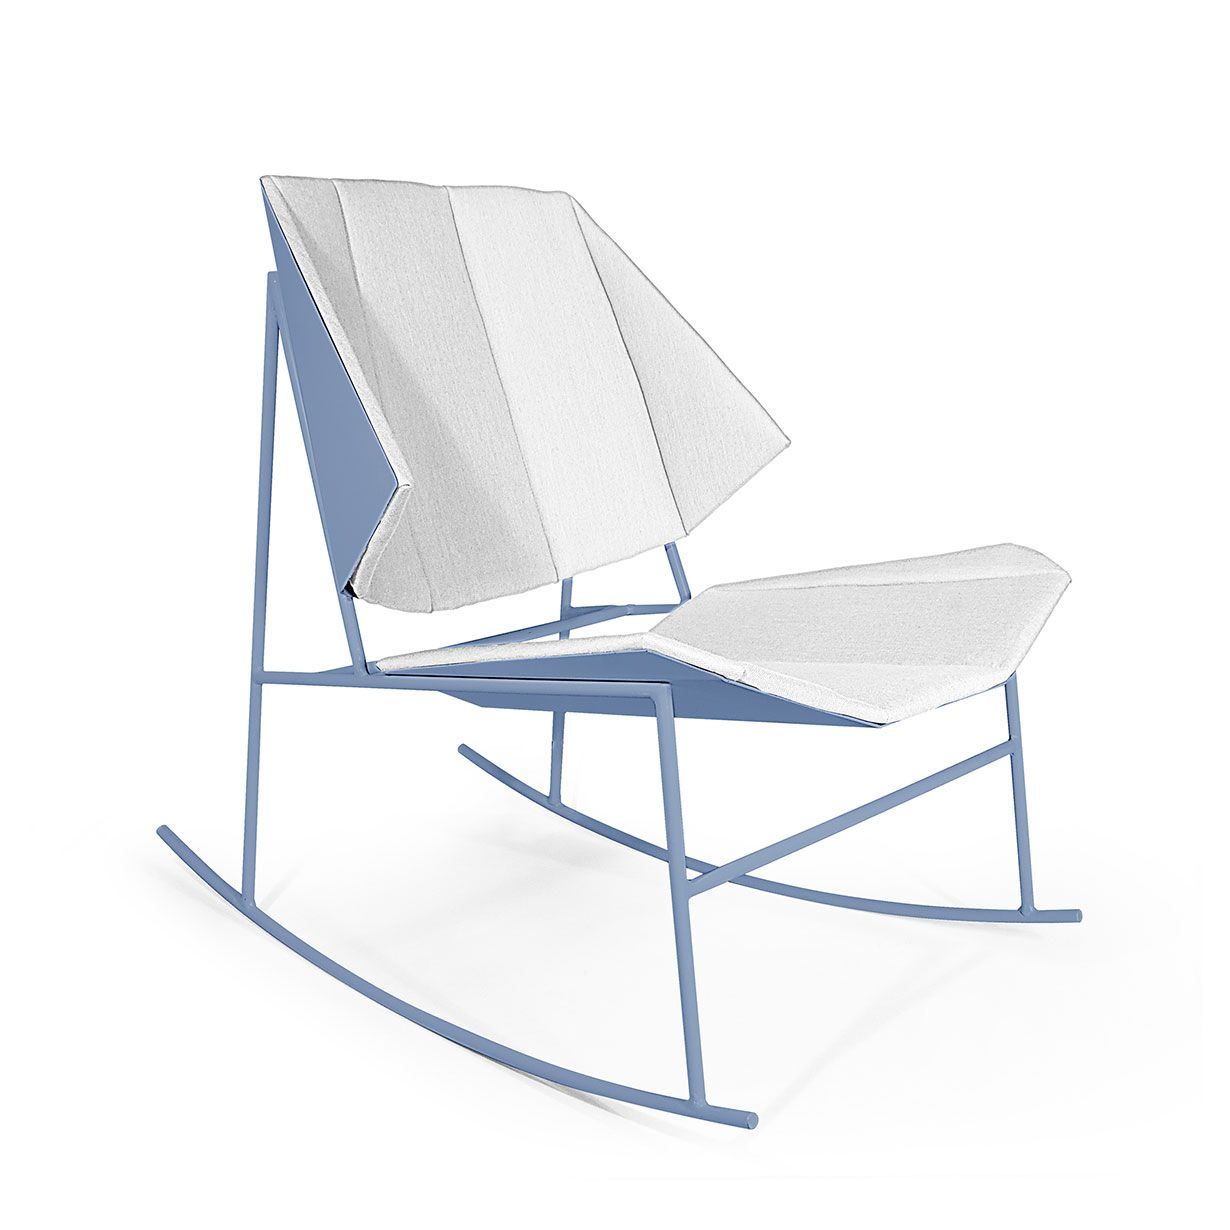 Terra rocking armchair by Atipico is made of zinc-plated metal, the back and the seat are made of fabric. www.lovethedesign.com